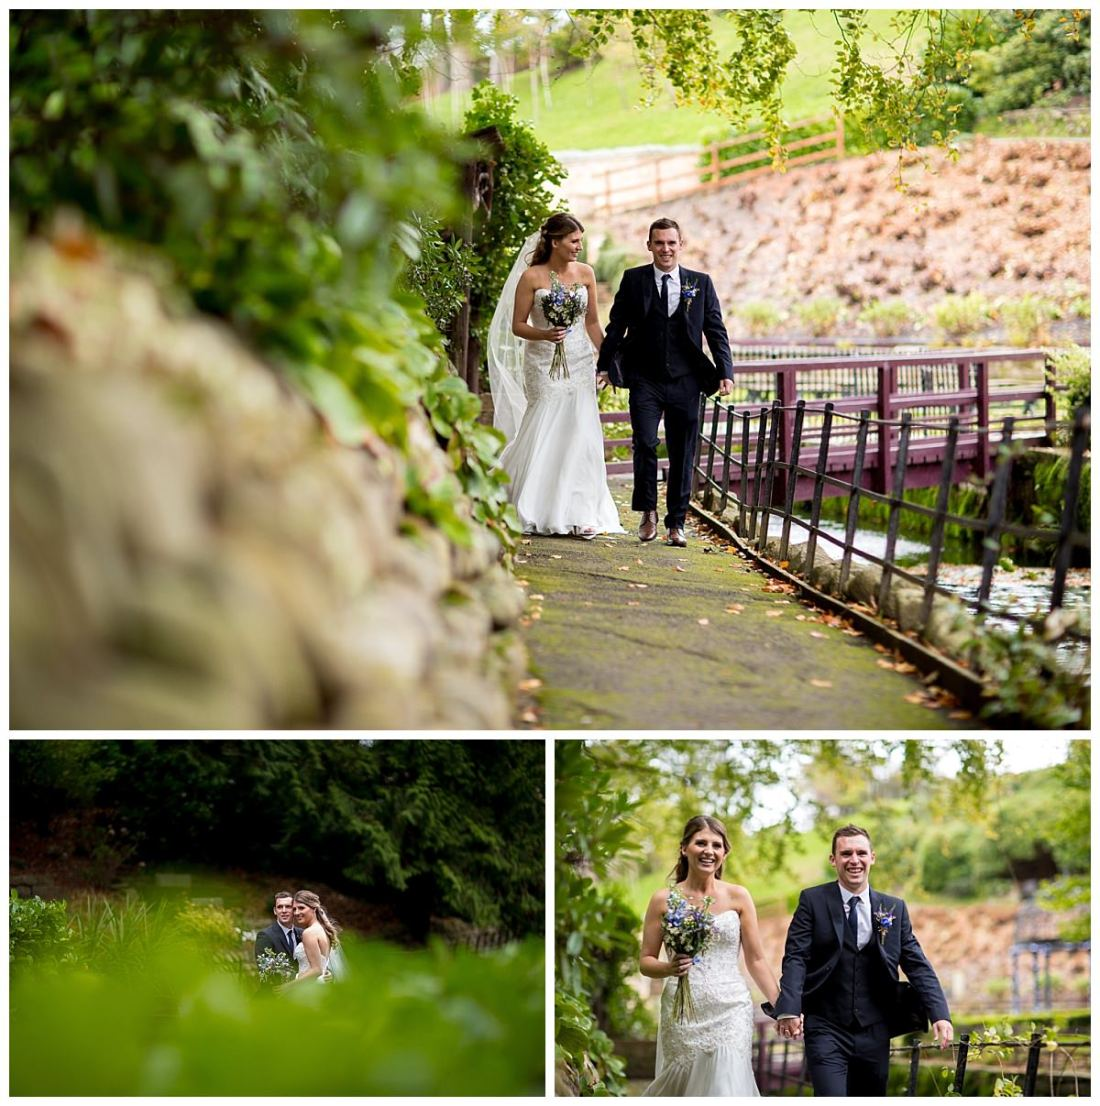 Bride and groom walking through the gardens at The Raithwaite Estate